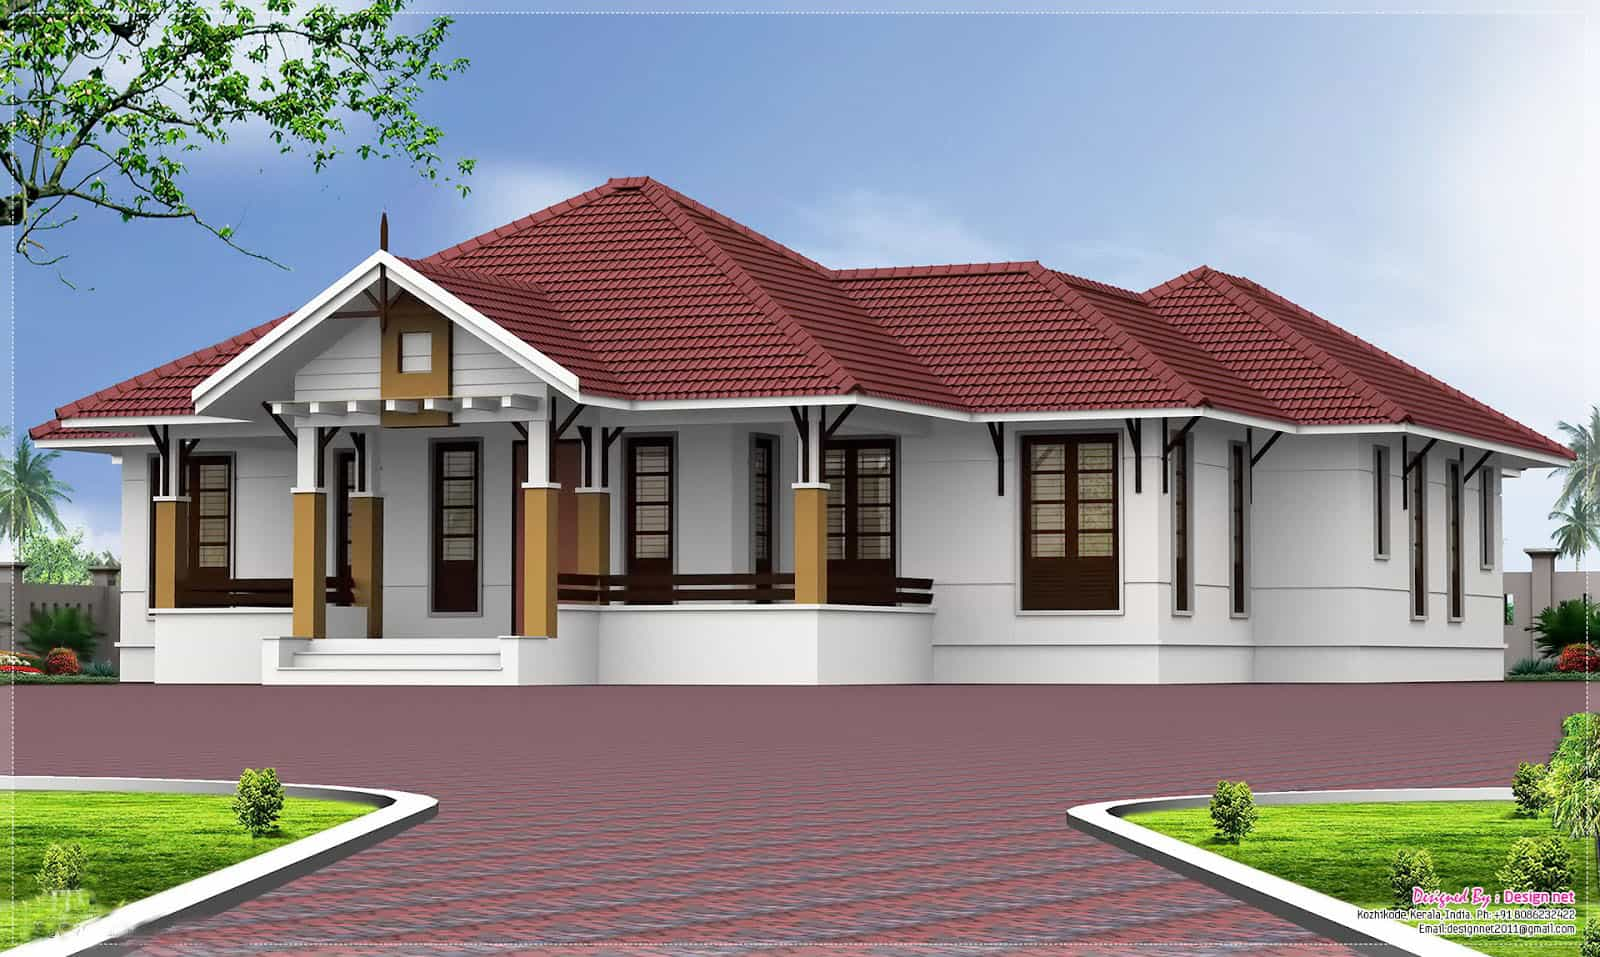 Top 4-Bedroom Single Story House Plans 1600 x 957 · 314 kB · jpeg